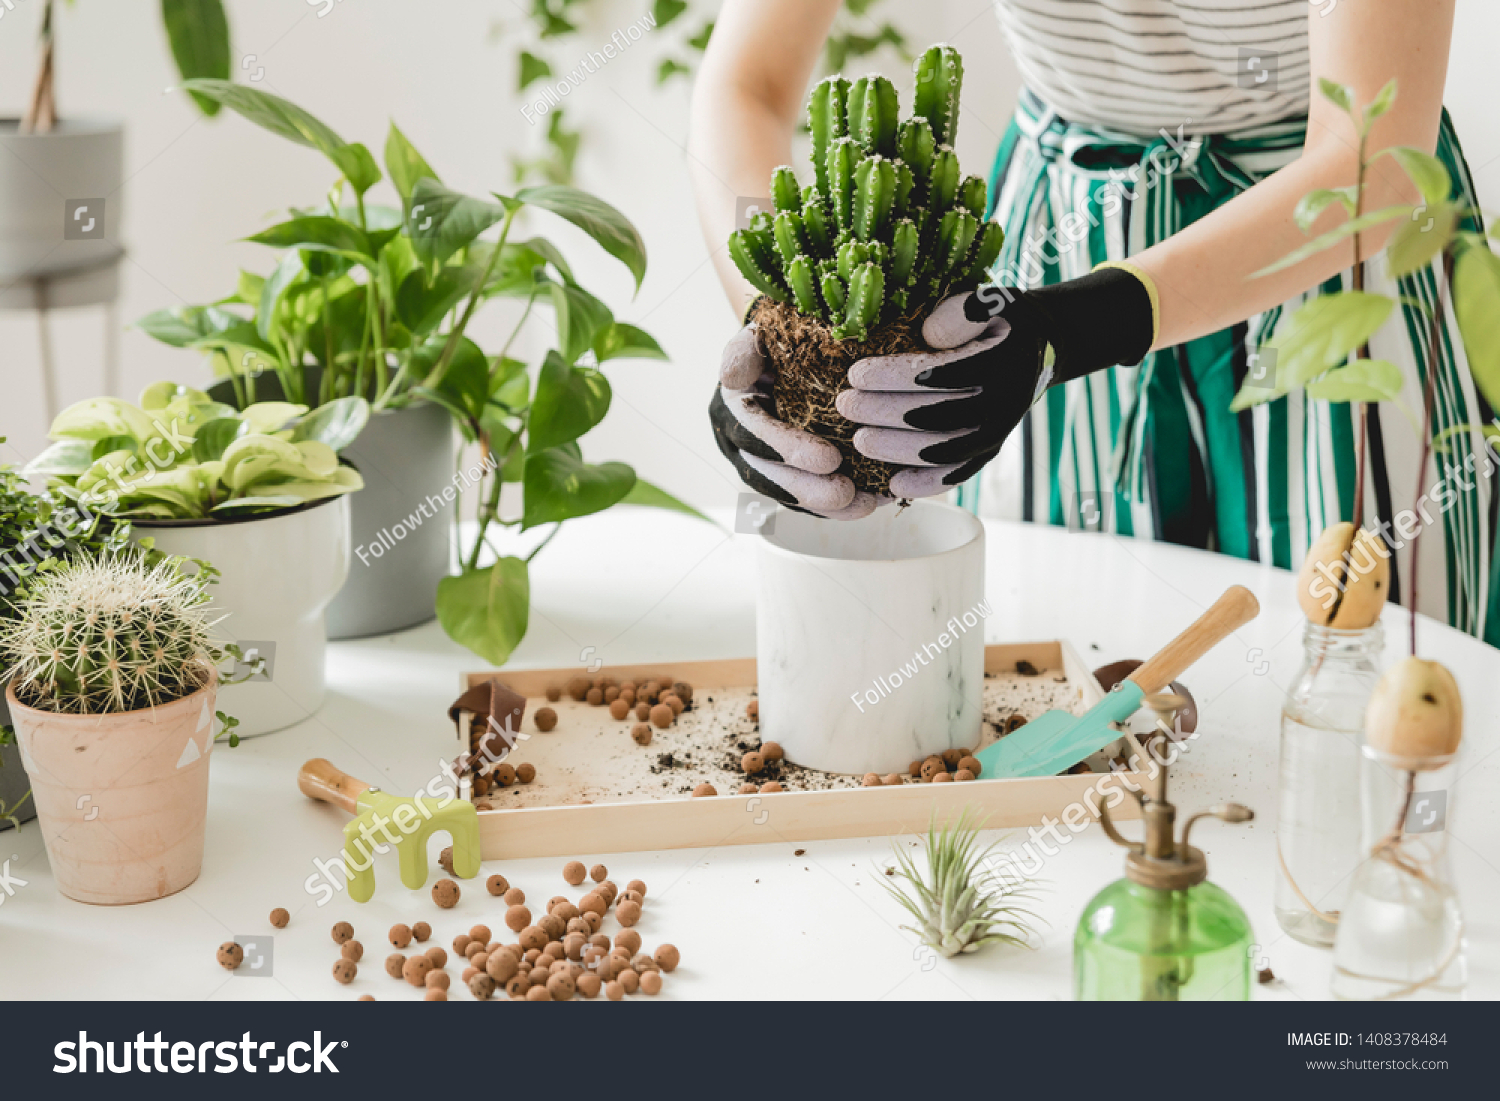 Woman gardeners  transplanting cacti in ceramic pots on the white wooden table. Concept of home garden. Spring time. Stylish interior with a lot of plants. Taking care of home plants. Template. #1408378484